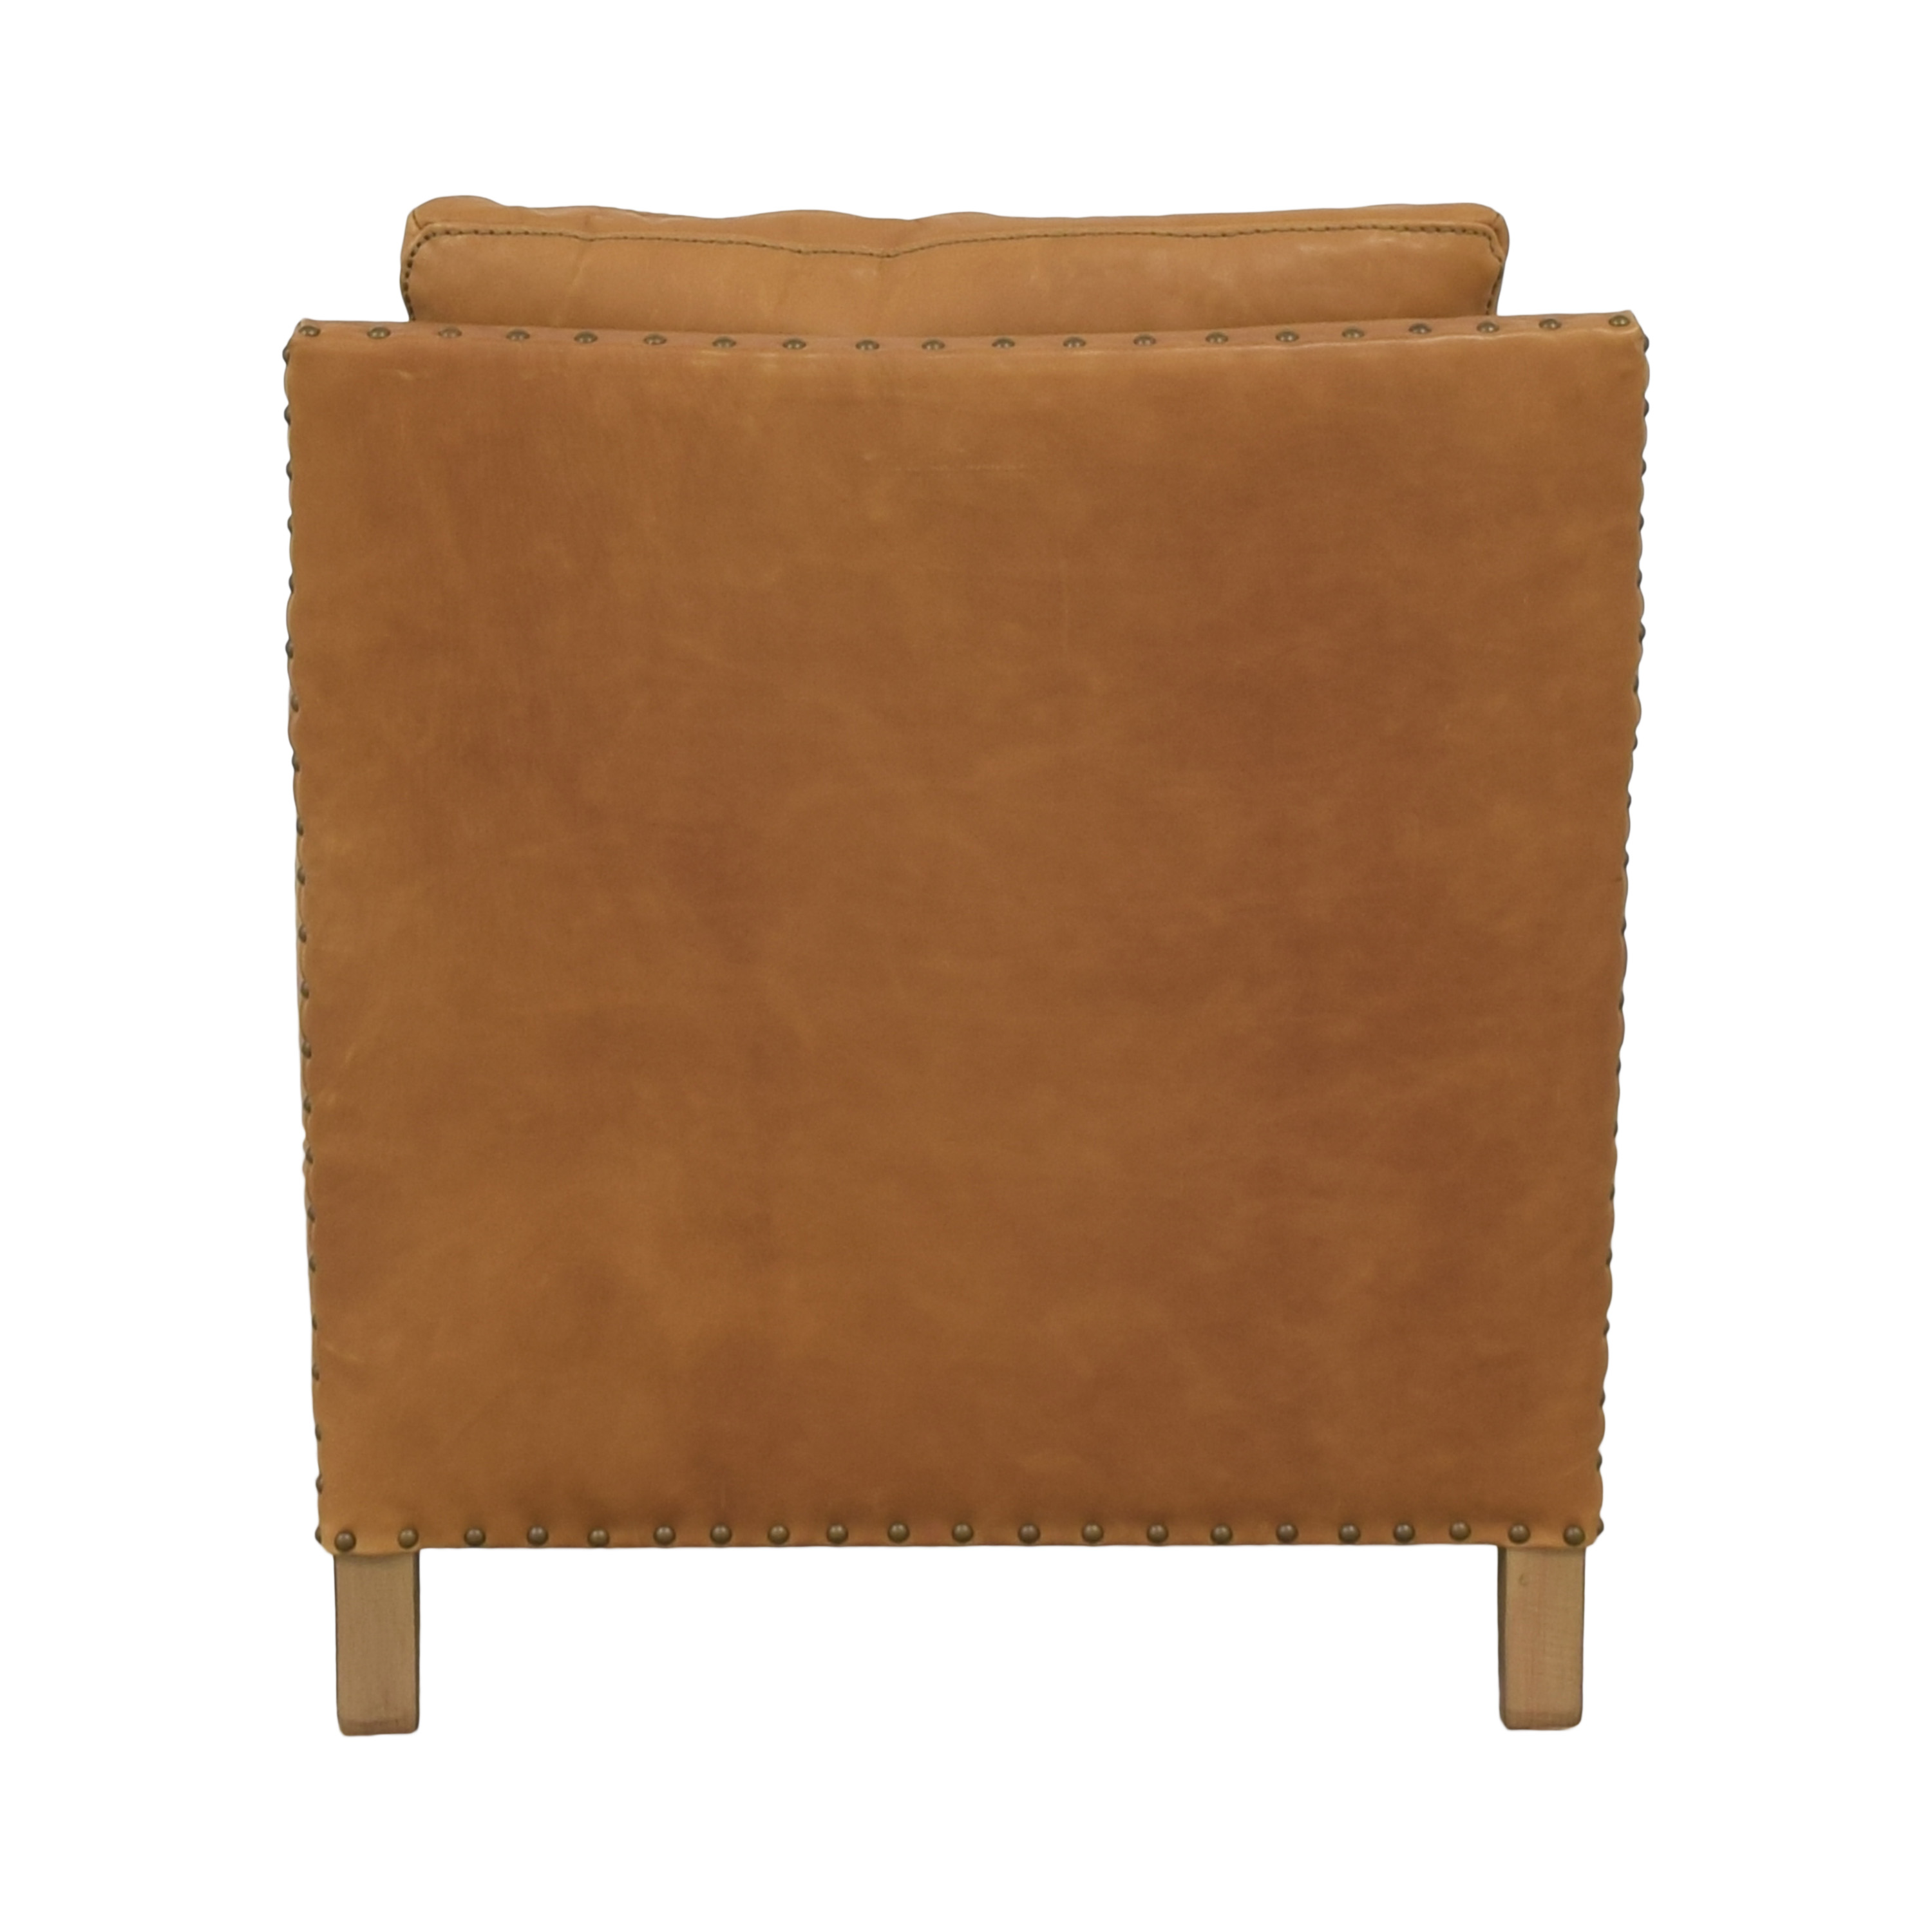 Crate & Barrel Crate & Barrel Trevor Leather Chair brown